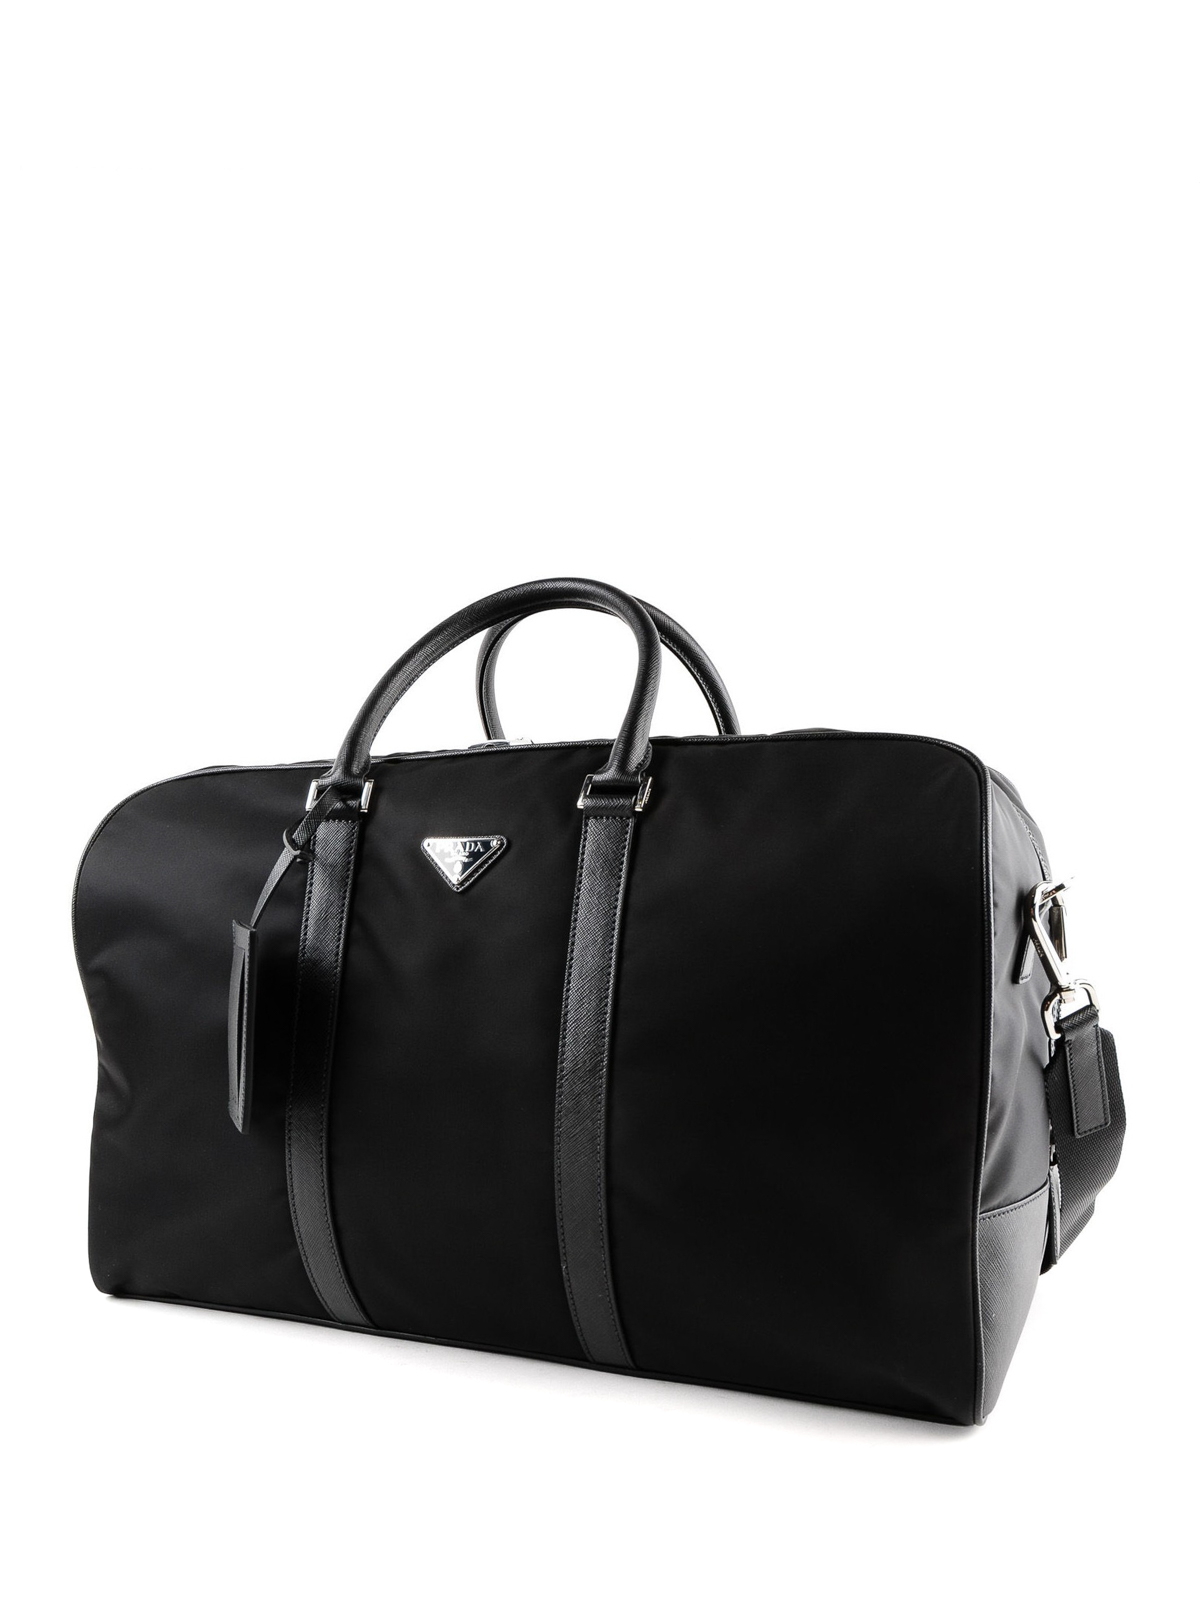 6fc4a0202ea6 PRADA  Luggage   Travel bags online - Fabric travel duffle bag with leather  details